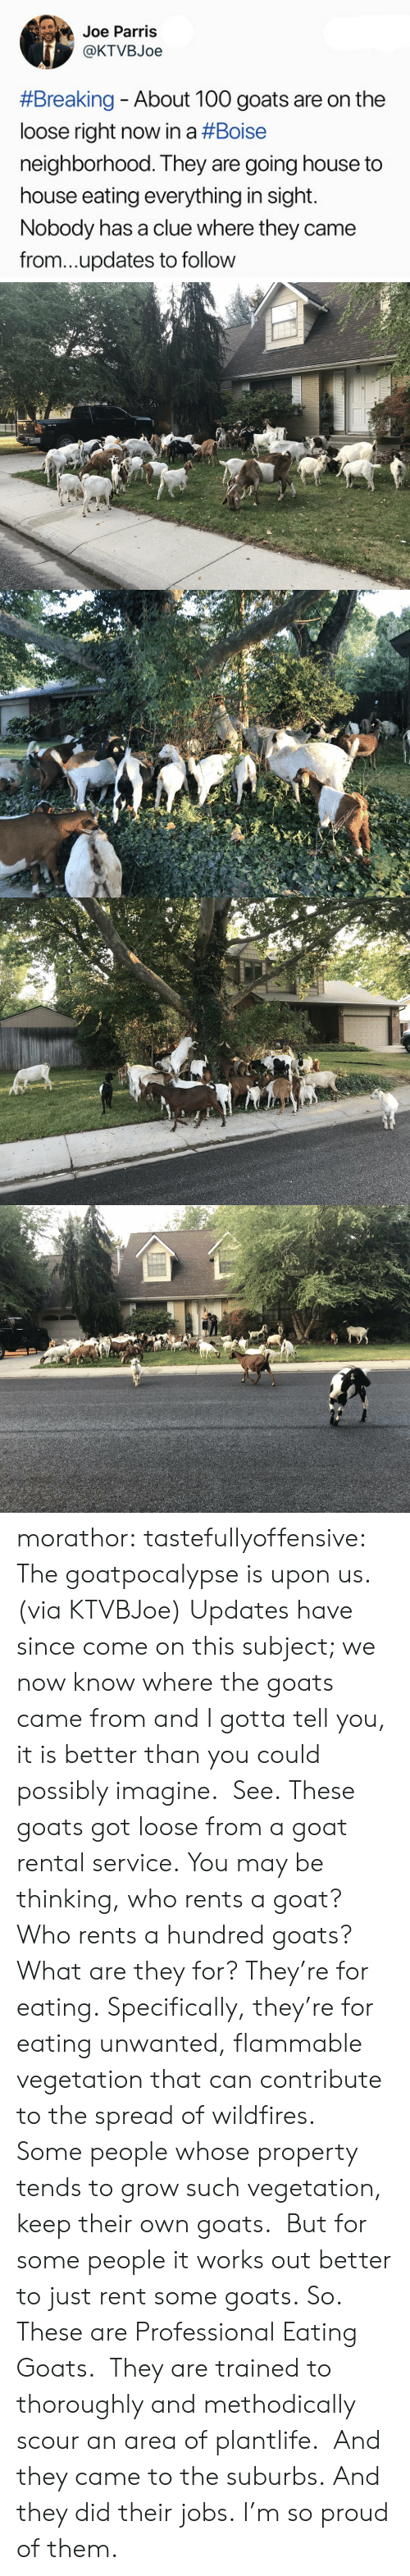 unwanted: Joe Parris  @KTVBJoe  #Breaking-About 100 goats are on the  loose right now in a #Boise  neighborhood. They are going house to  house eating everything in sight.  Nobody has a clue where they came  from...updates to follow morathor: tastefullyoffensive: The goatpocalypse is upon us. (via KTVBJoe) Updates have since come on this subject; we now know where the goats came from and I gotta tell you, it is better than you could possibly imagine. See. These goats got loose from a goat rental service. You may be thinking, who rents a goat? Who rents a hundred goats? What are they for? They're for eating. Specifically, they're for eating unwanted, flammable vegetation that can contribute to the spread of wildfires. Some people whose property tends to grow such vegetation, keep their own goats. But for some people it works out better to just rent some goats. So. These are Professional Eating Goats. They are trained to thoroughly and methodically scour an area of plantlife. And they came to the suburbs. And they did their jobs. I'm so proud of them.